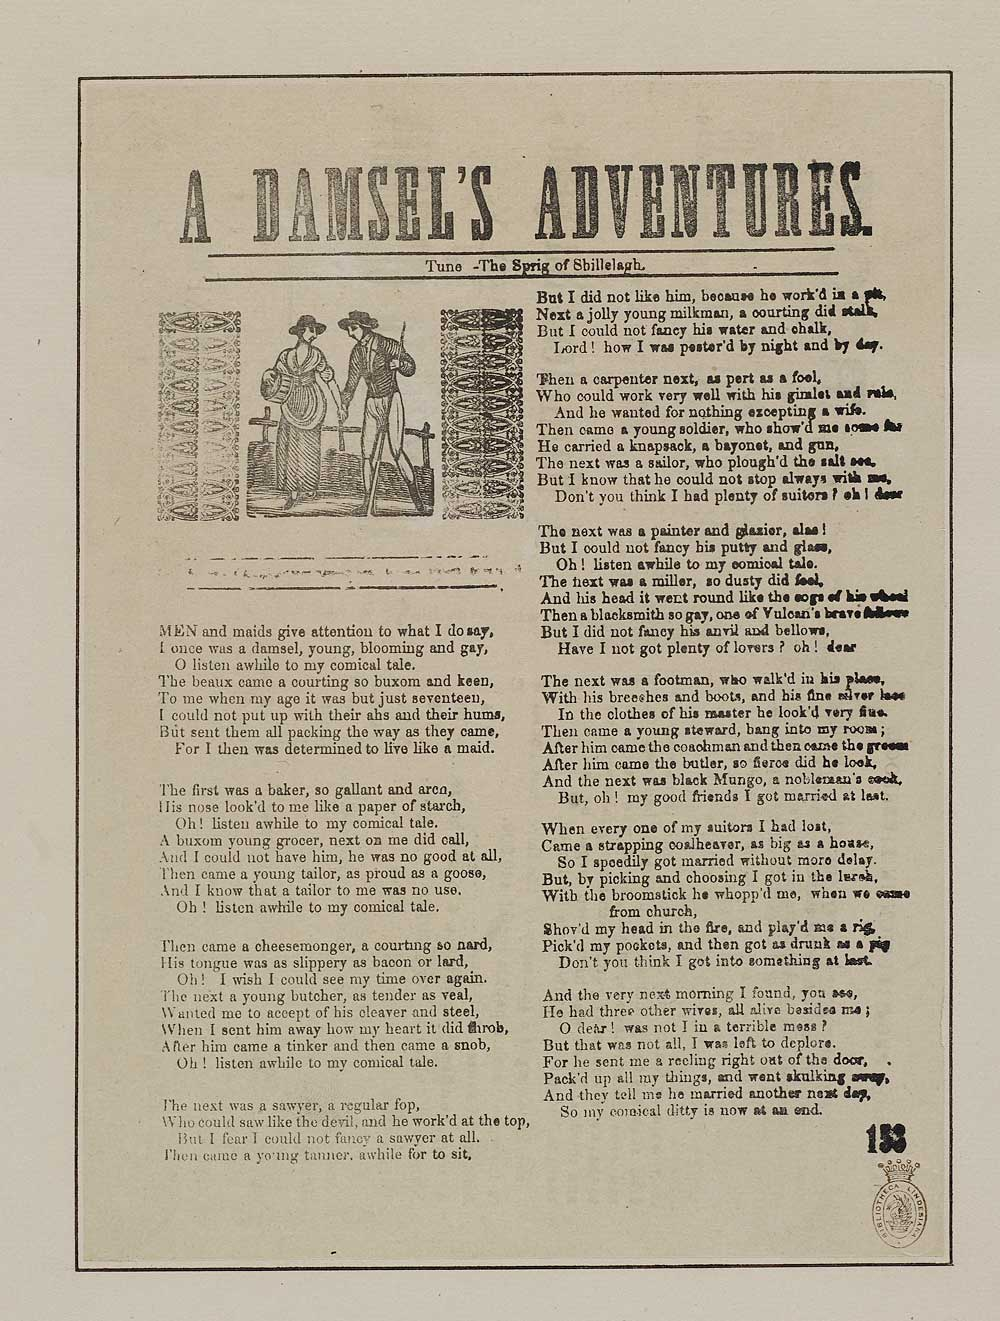 Damsel's adventures - Courtship & marriage - English ballads